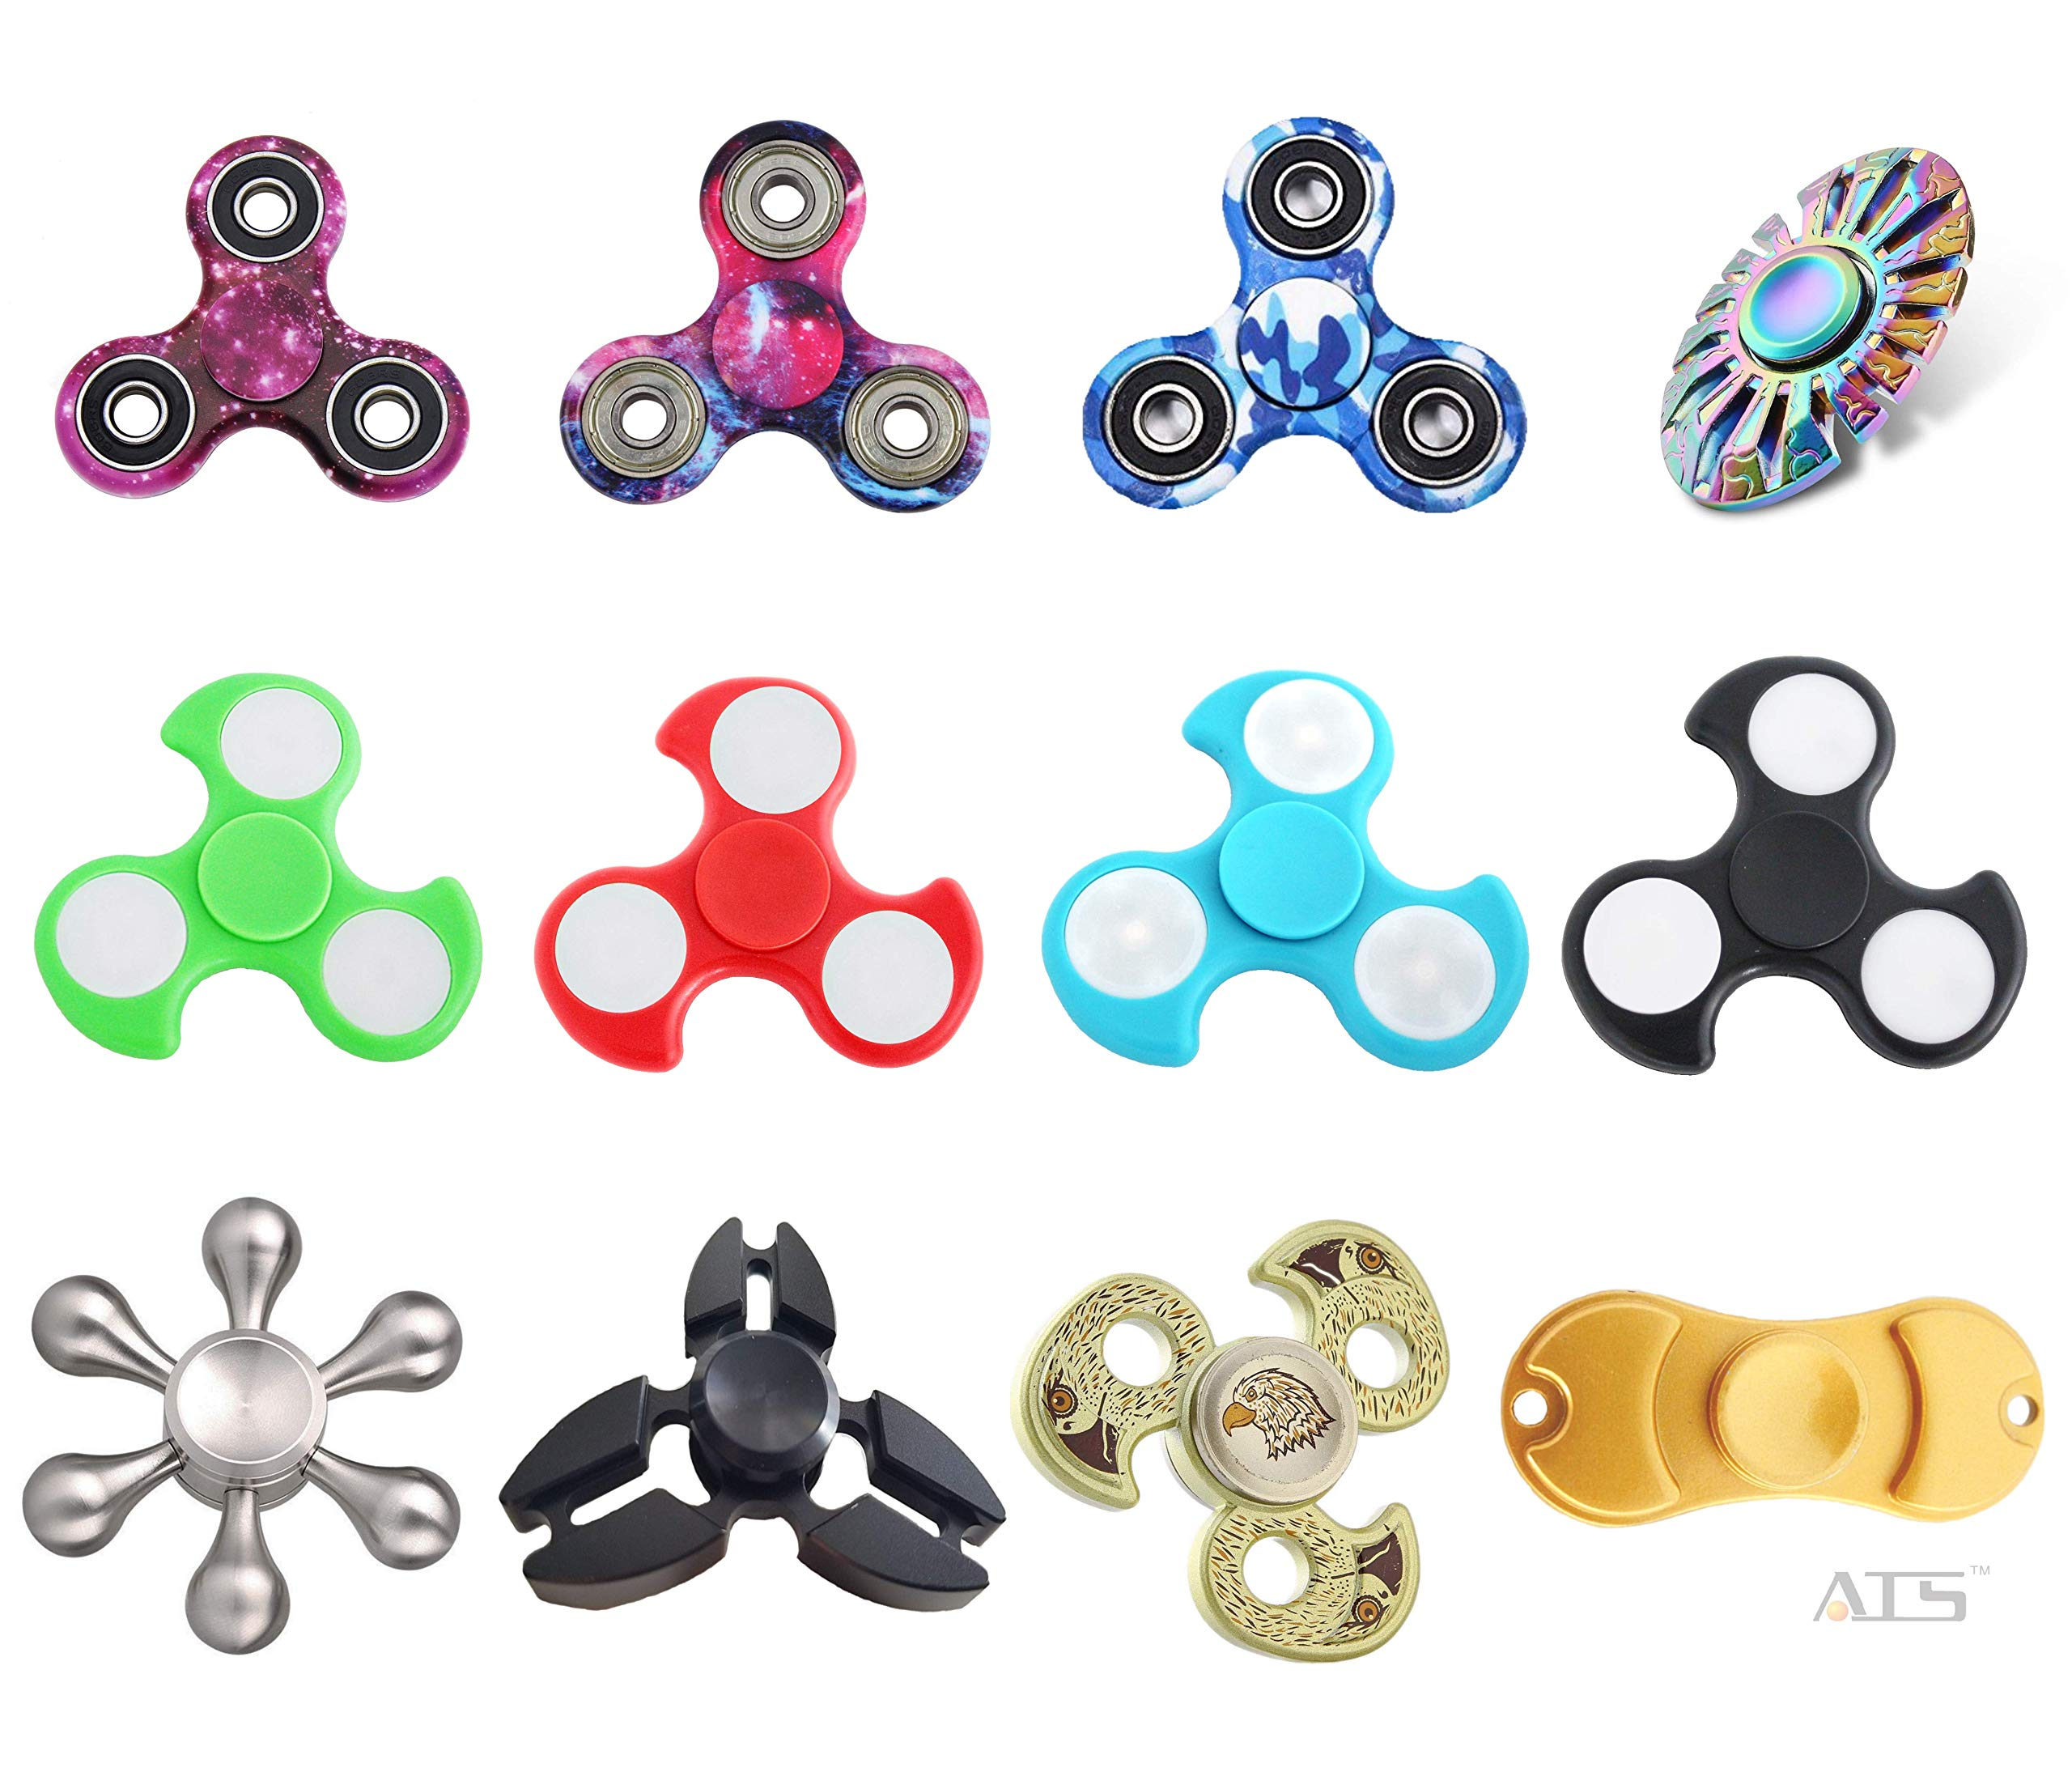 ATS 15-Pack Assorted Combo Fidget Spinners | Colors May Vary | 15 pcs Mixed Hand Spinners Bundle | Perfect Finger Toys for Stress Relief, Anxiety, Autism, ADHD | Great Present for Adults Kids